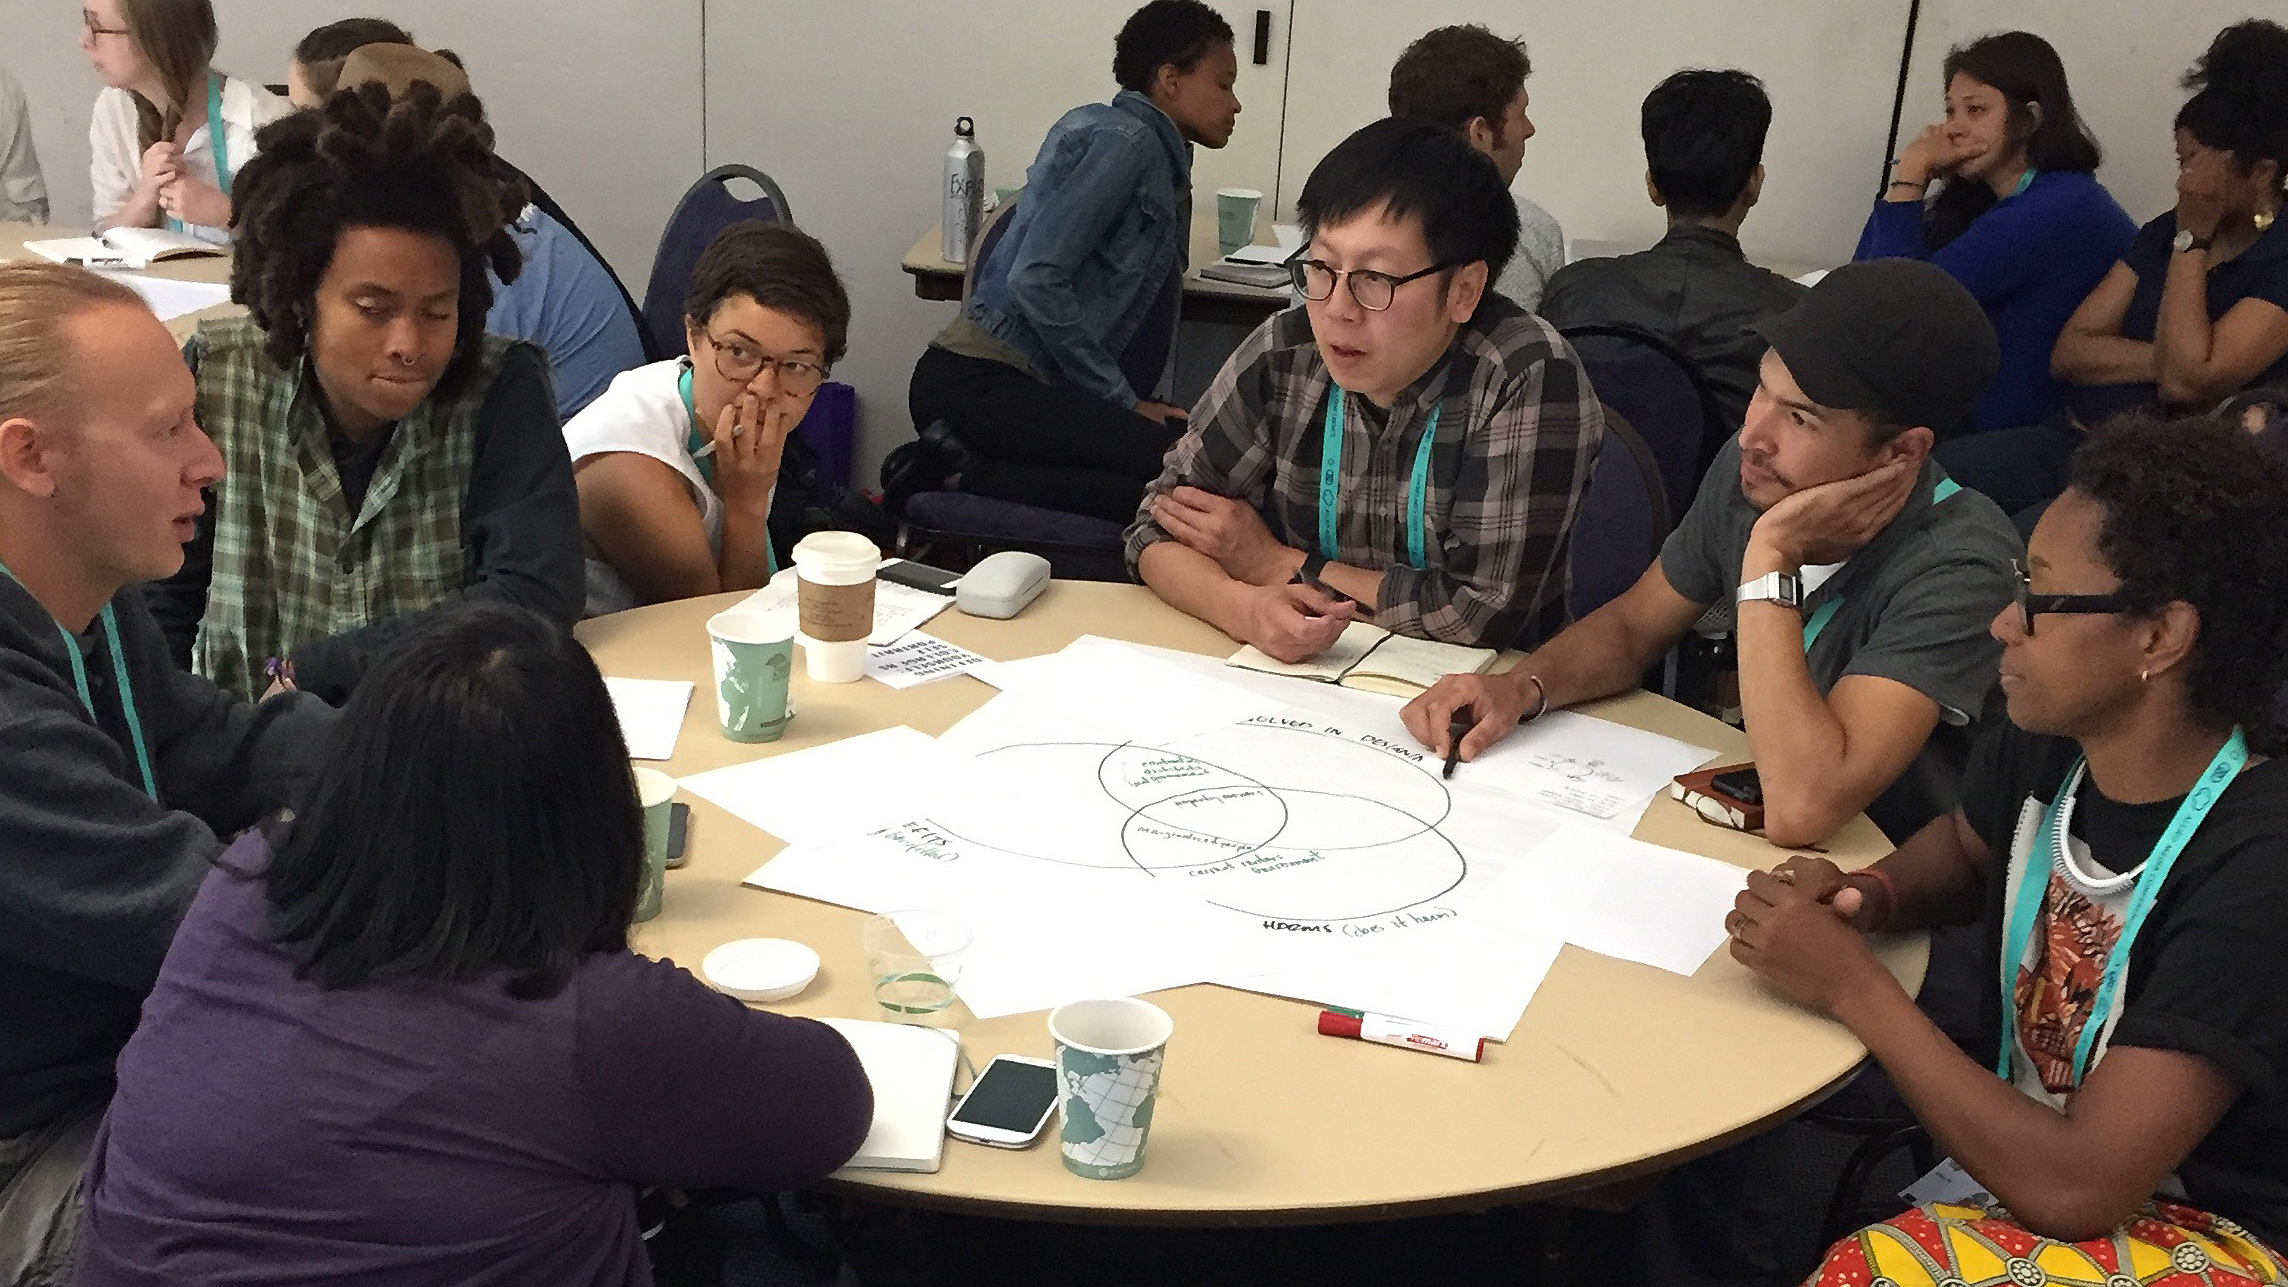 Plotting out the people in social impact design stories